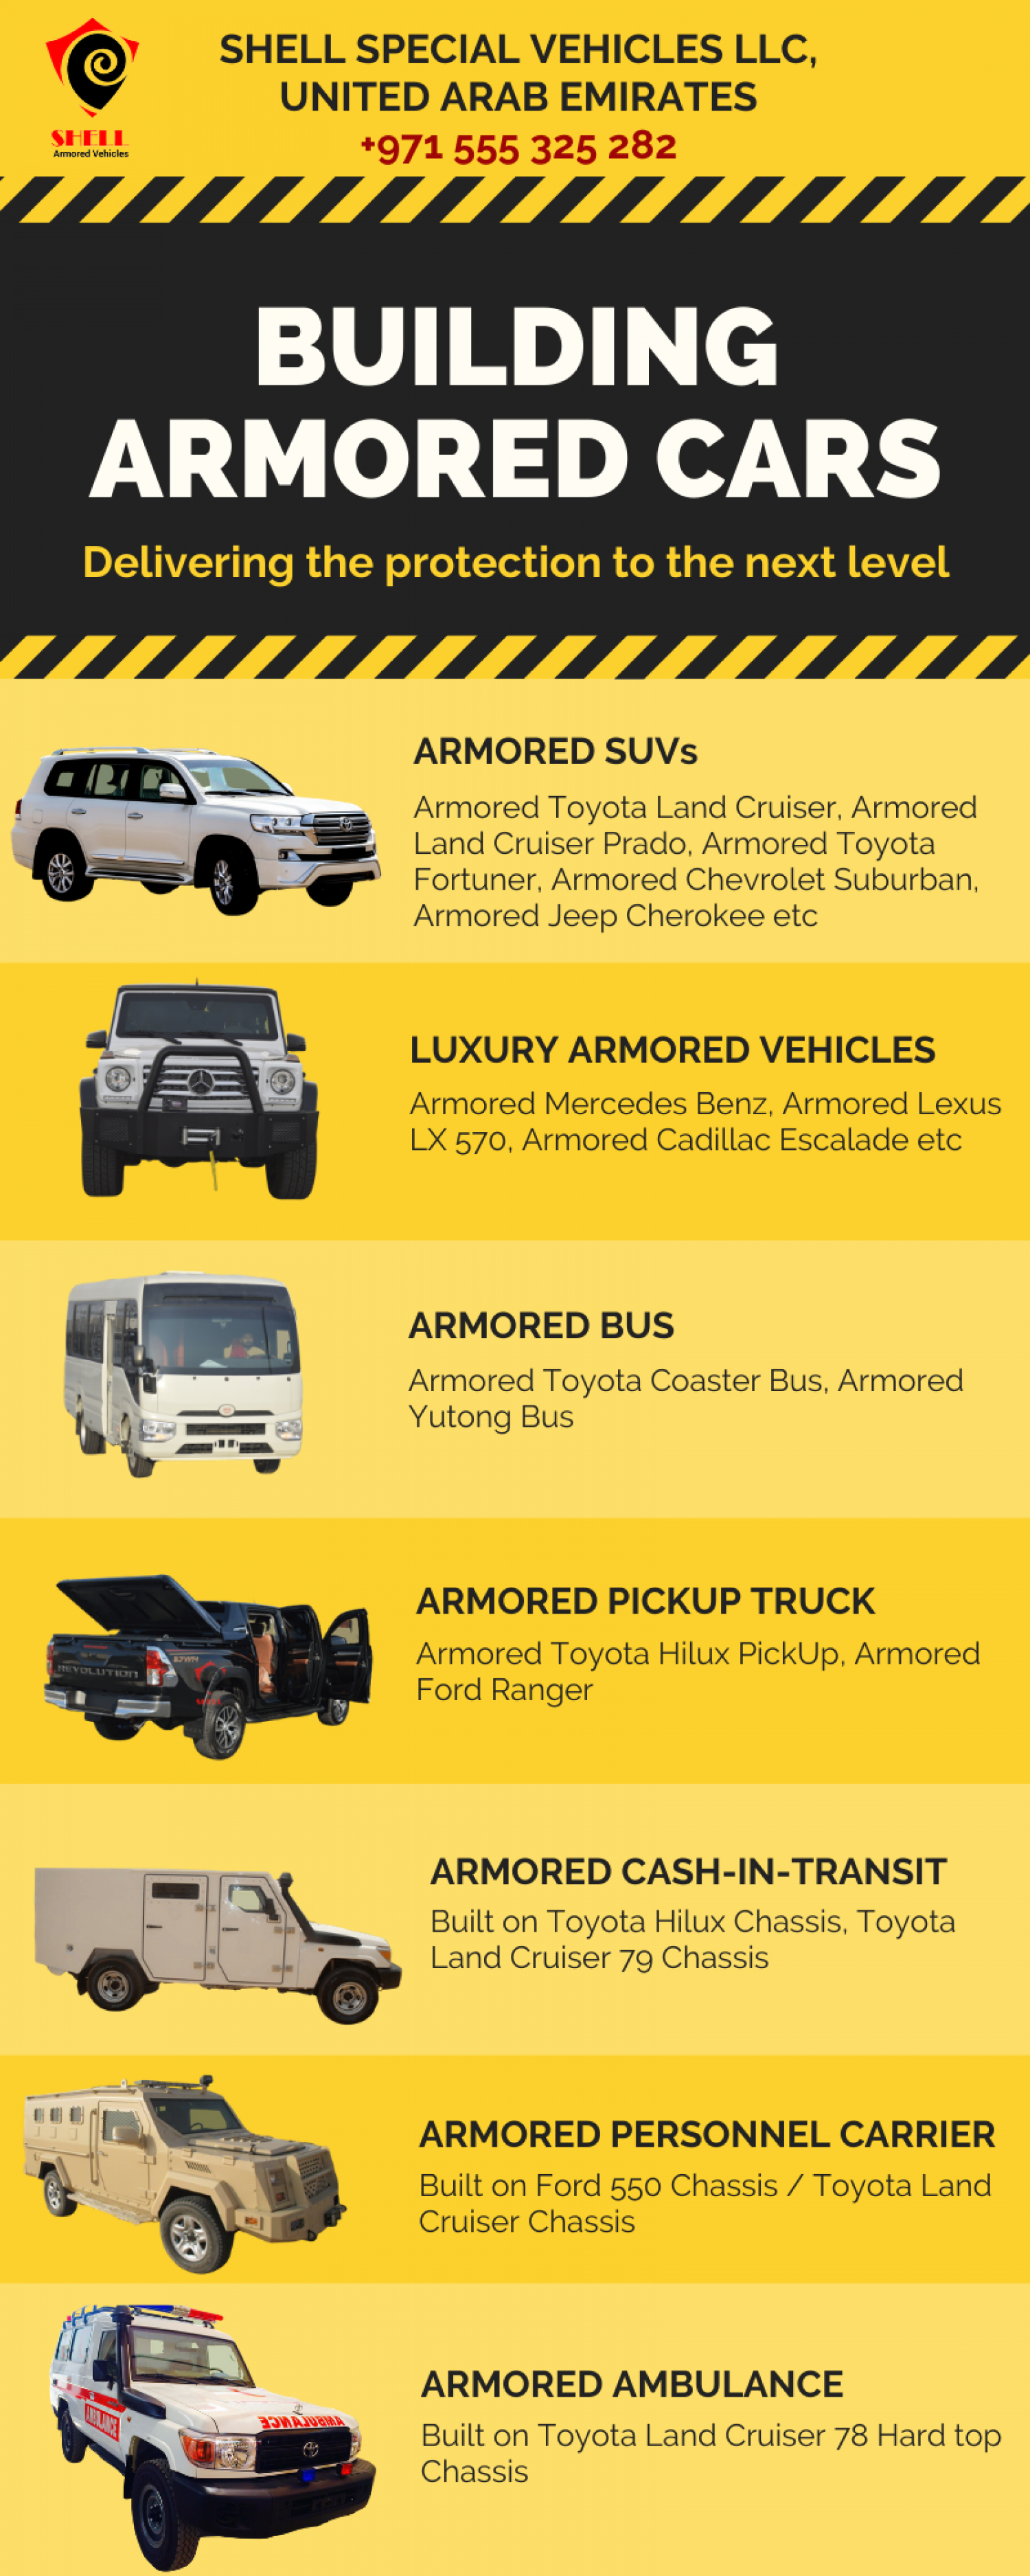 Sale of Armored Cars Custom Vehicle Armoring Affordable Bulletproof Cars Shell Armored Vehicles Infographic